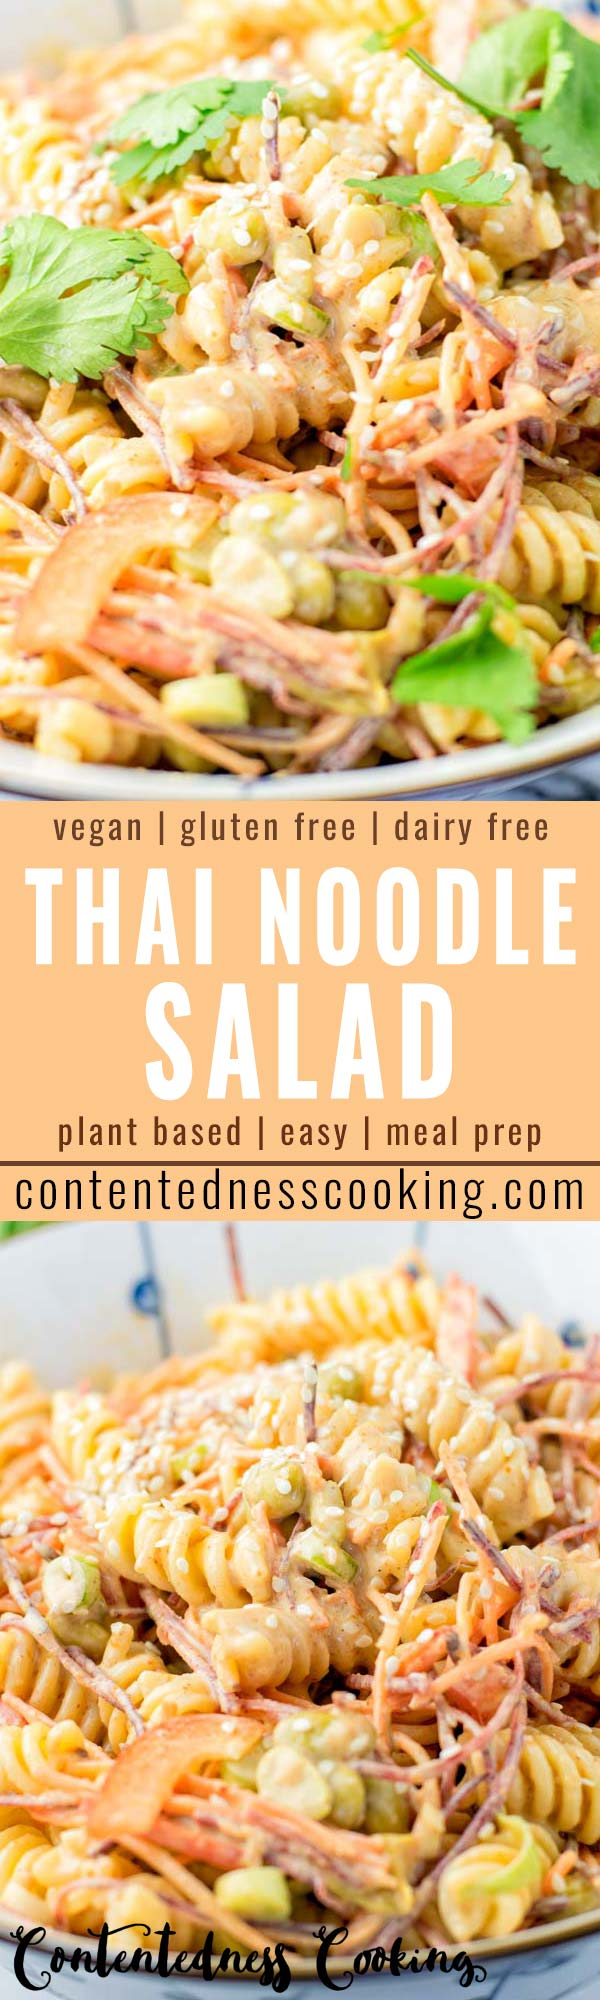 Filling and satisfying: This Thai Noodle Salad is covered in the most delicious Thai peanut sauce you've ever made and tasted. A keeper that tastes so delicious for dinner, lunch, meal prep and is so easy to make that the whole family will love, even the pickiest kids. #vegan #dairyfree #glutenfree #vegetarian #thainoodlesalad #peanutsauce #dinner #lunch #mealprep #comfortfood #worklunchideas #budgetmeals #contentednesscooking #comfortfood #familymeals